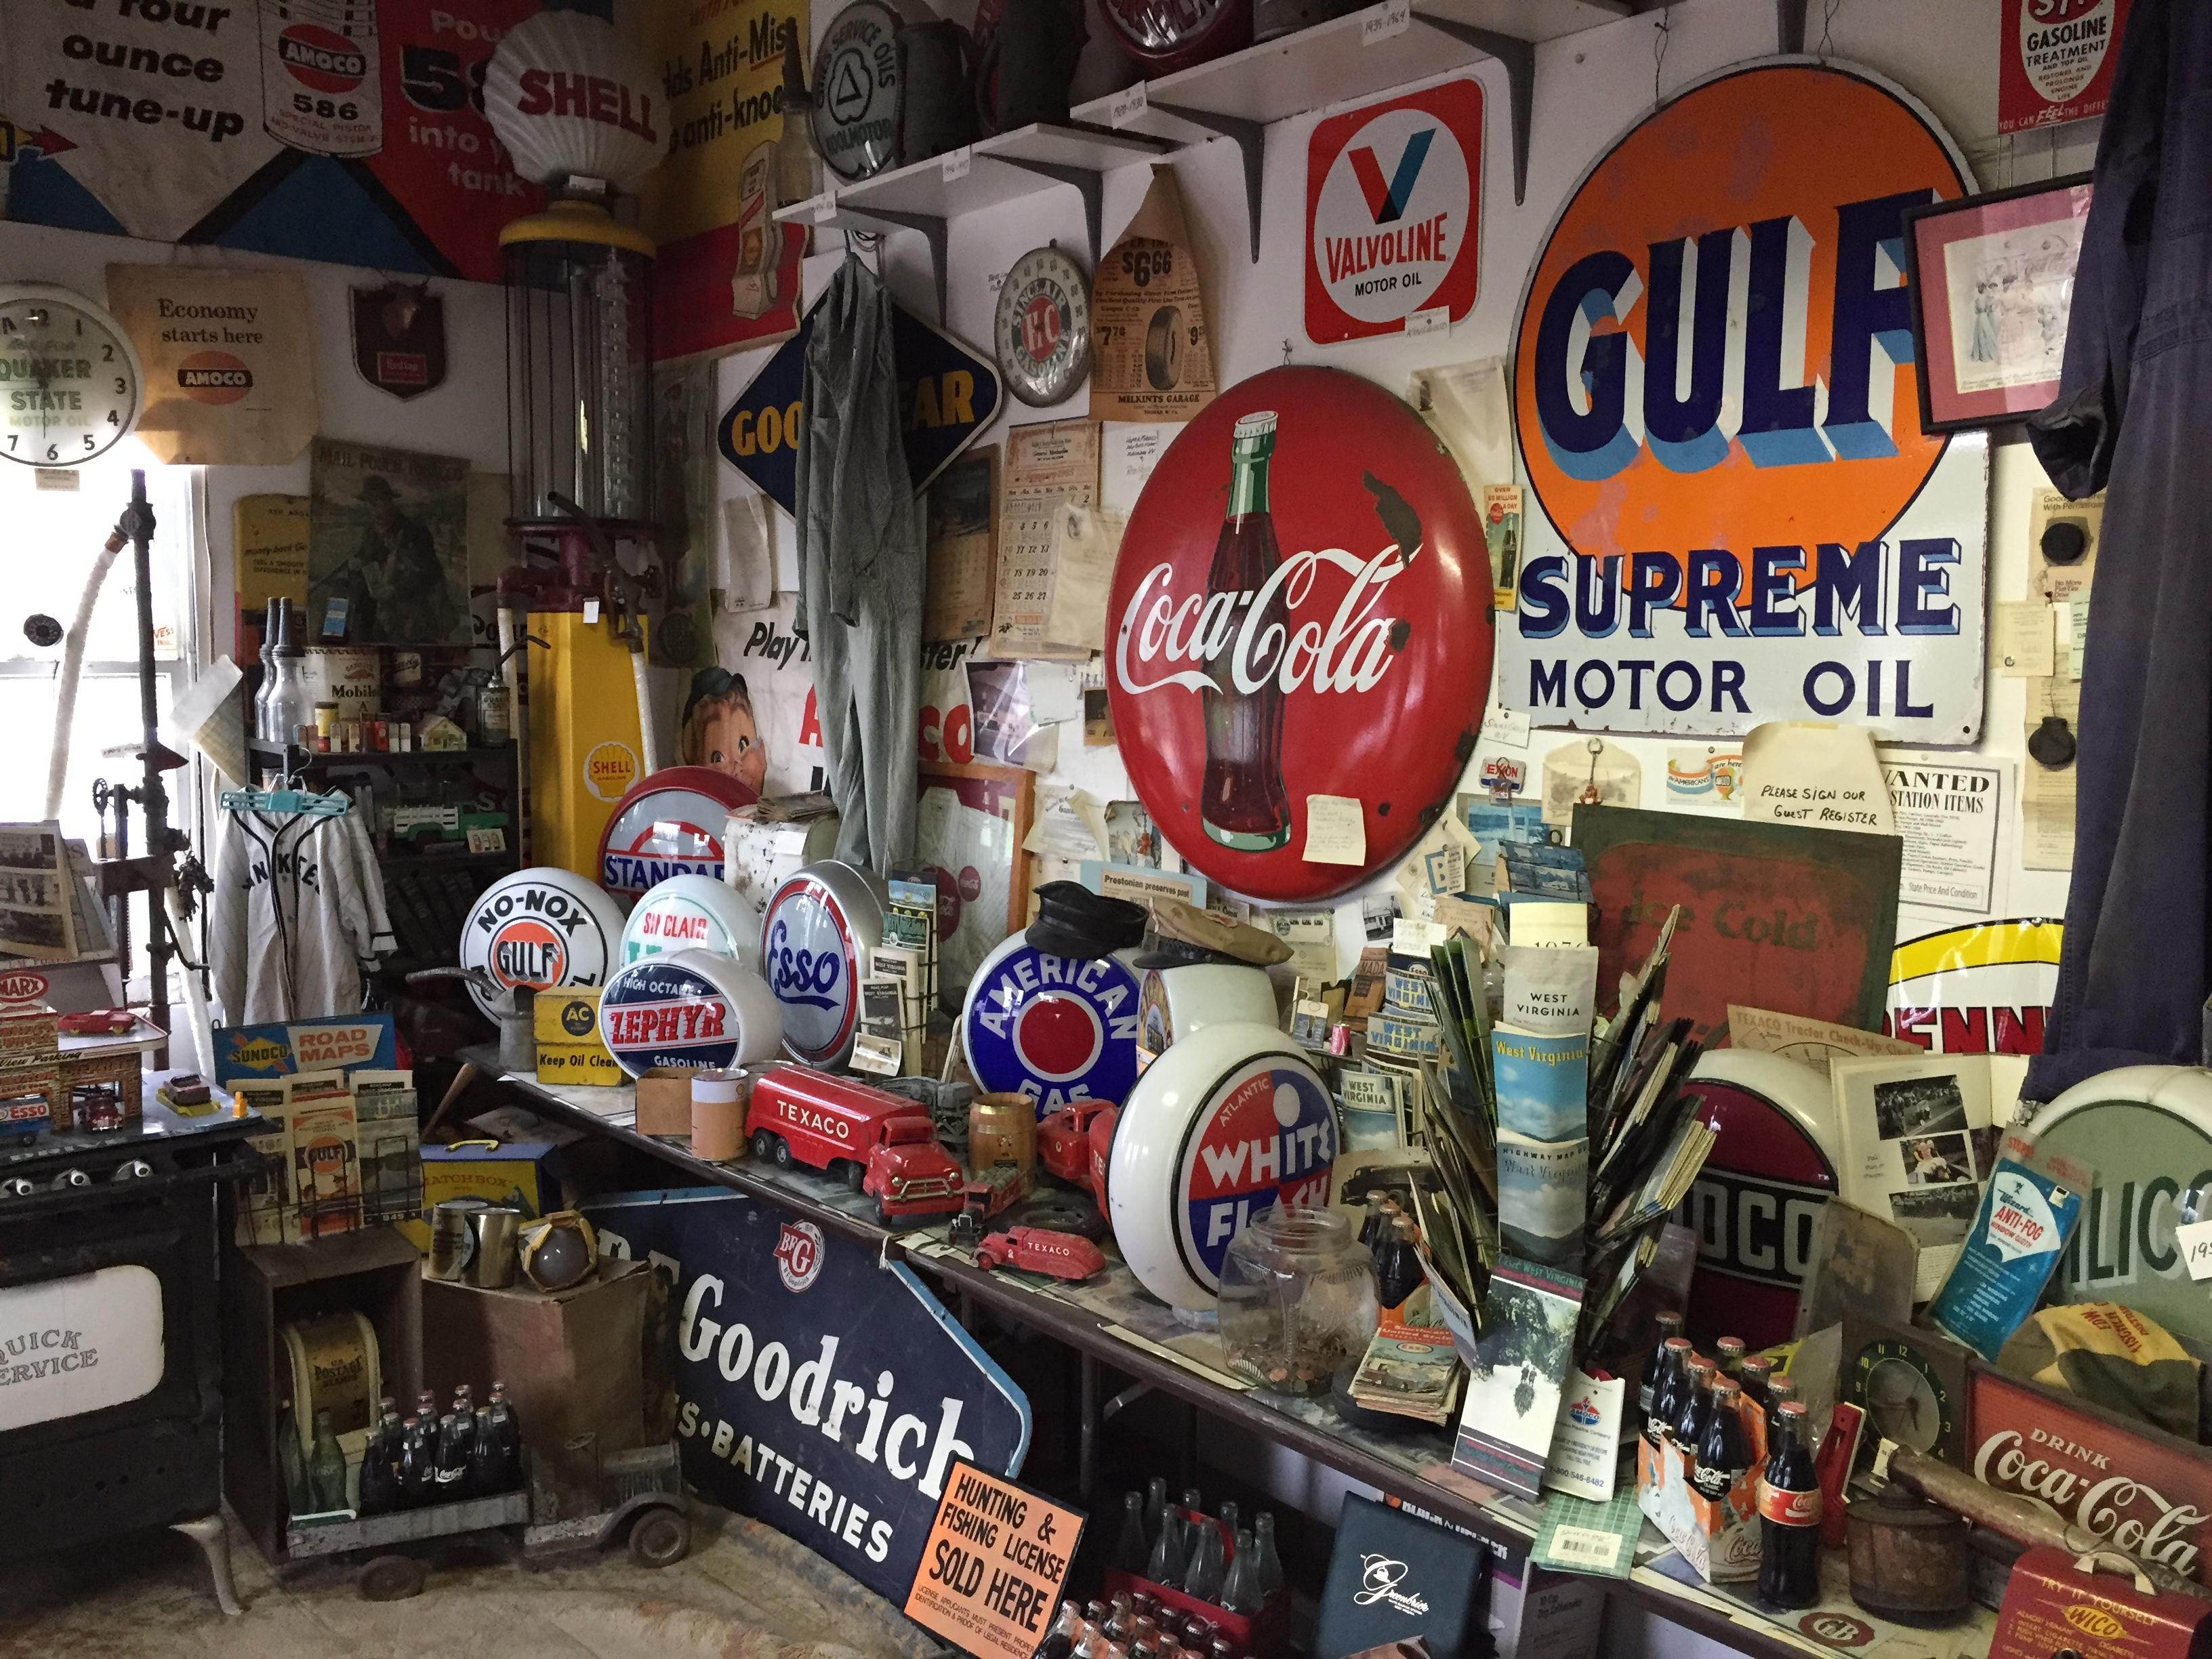 Auto memorabilia that Westbrook has collected fills the interior of the service station. (WCHS/WVAH)<p></p>